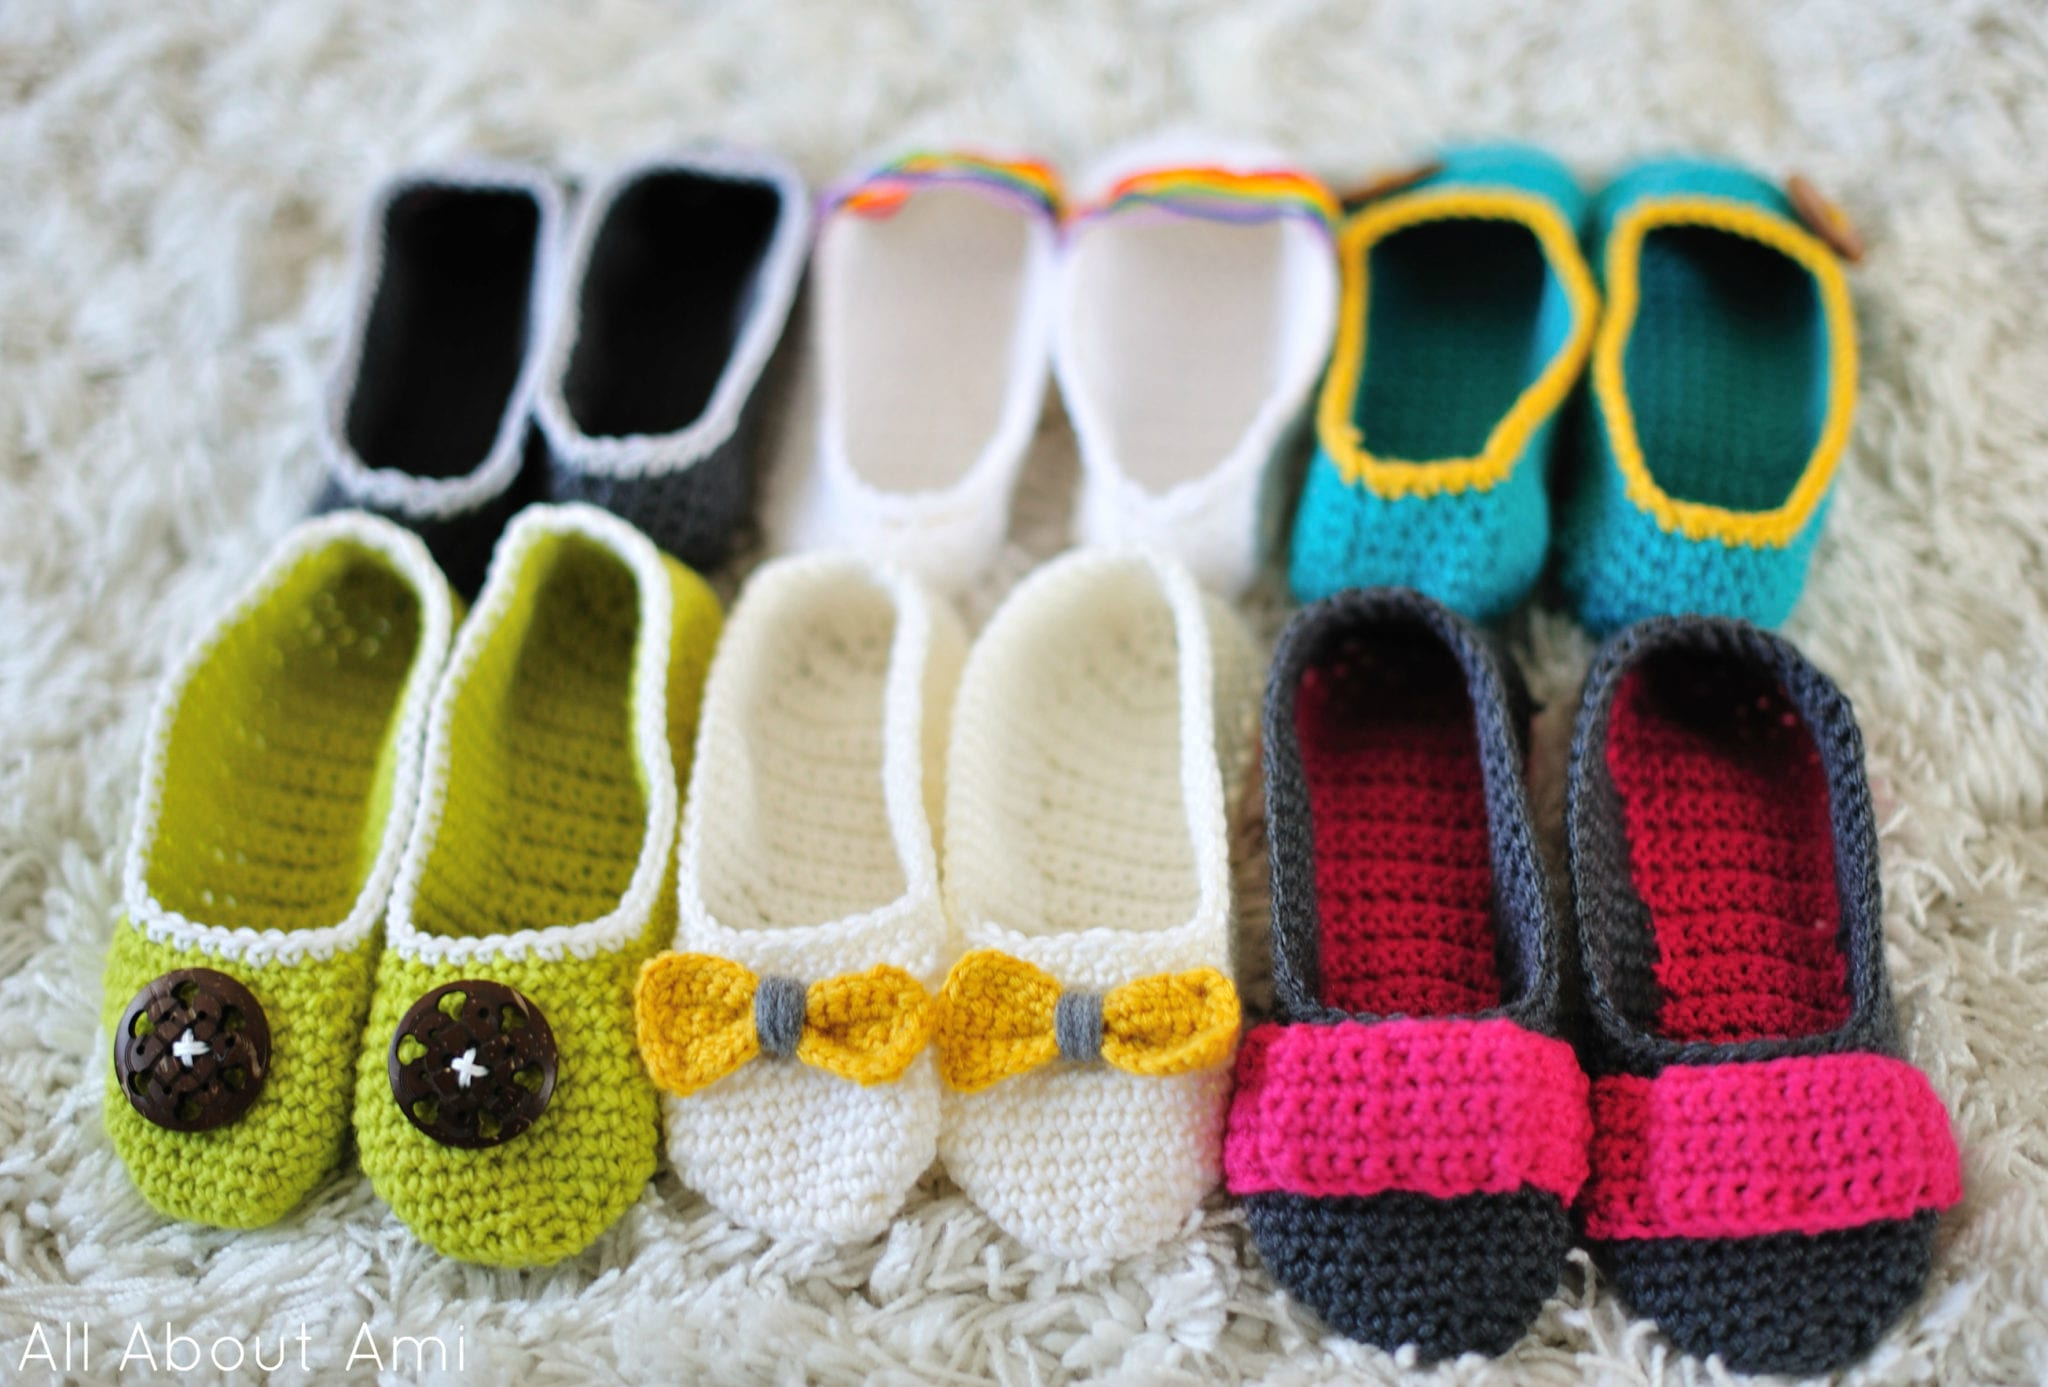 Crochet Slippers Part 2 - All About Ami